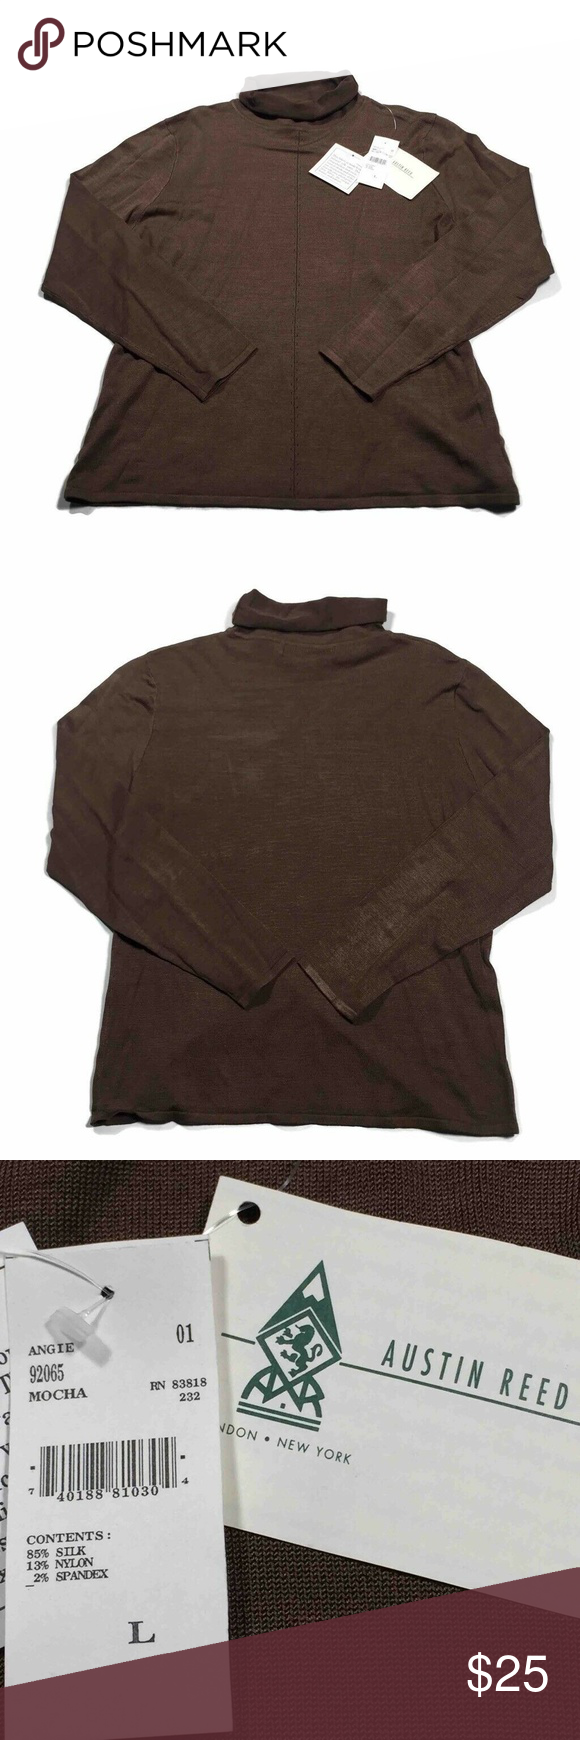 Austin Reed Sweater Mocha Brown Silk High Neck New Austin Reed Mens Pullover Mocha Long Sleeve High Neck Knit Stretch Sweat Brown Silk Sweaters Stretch Sweater